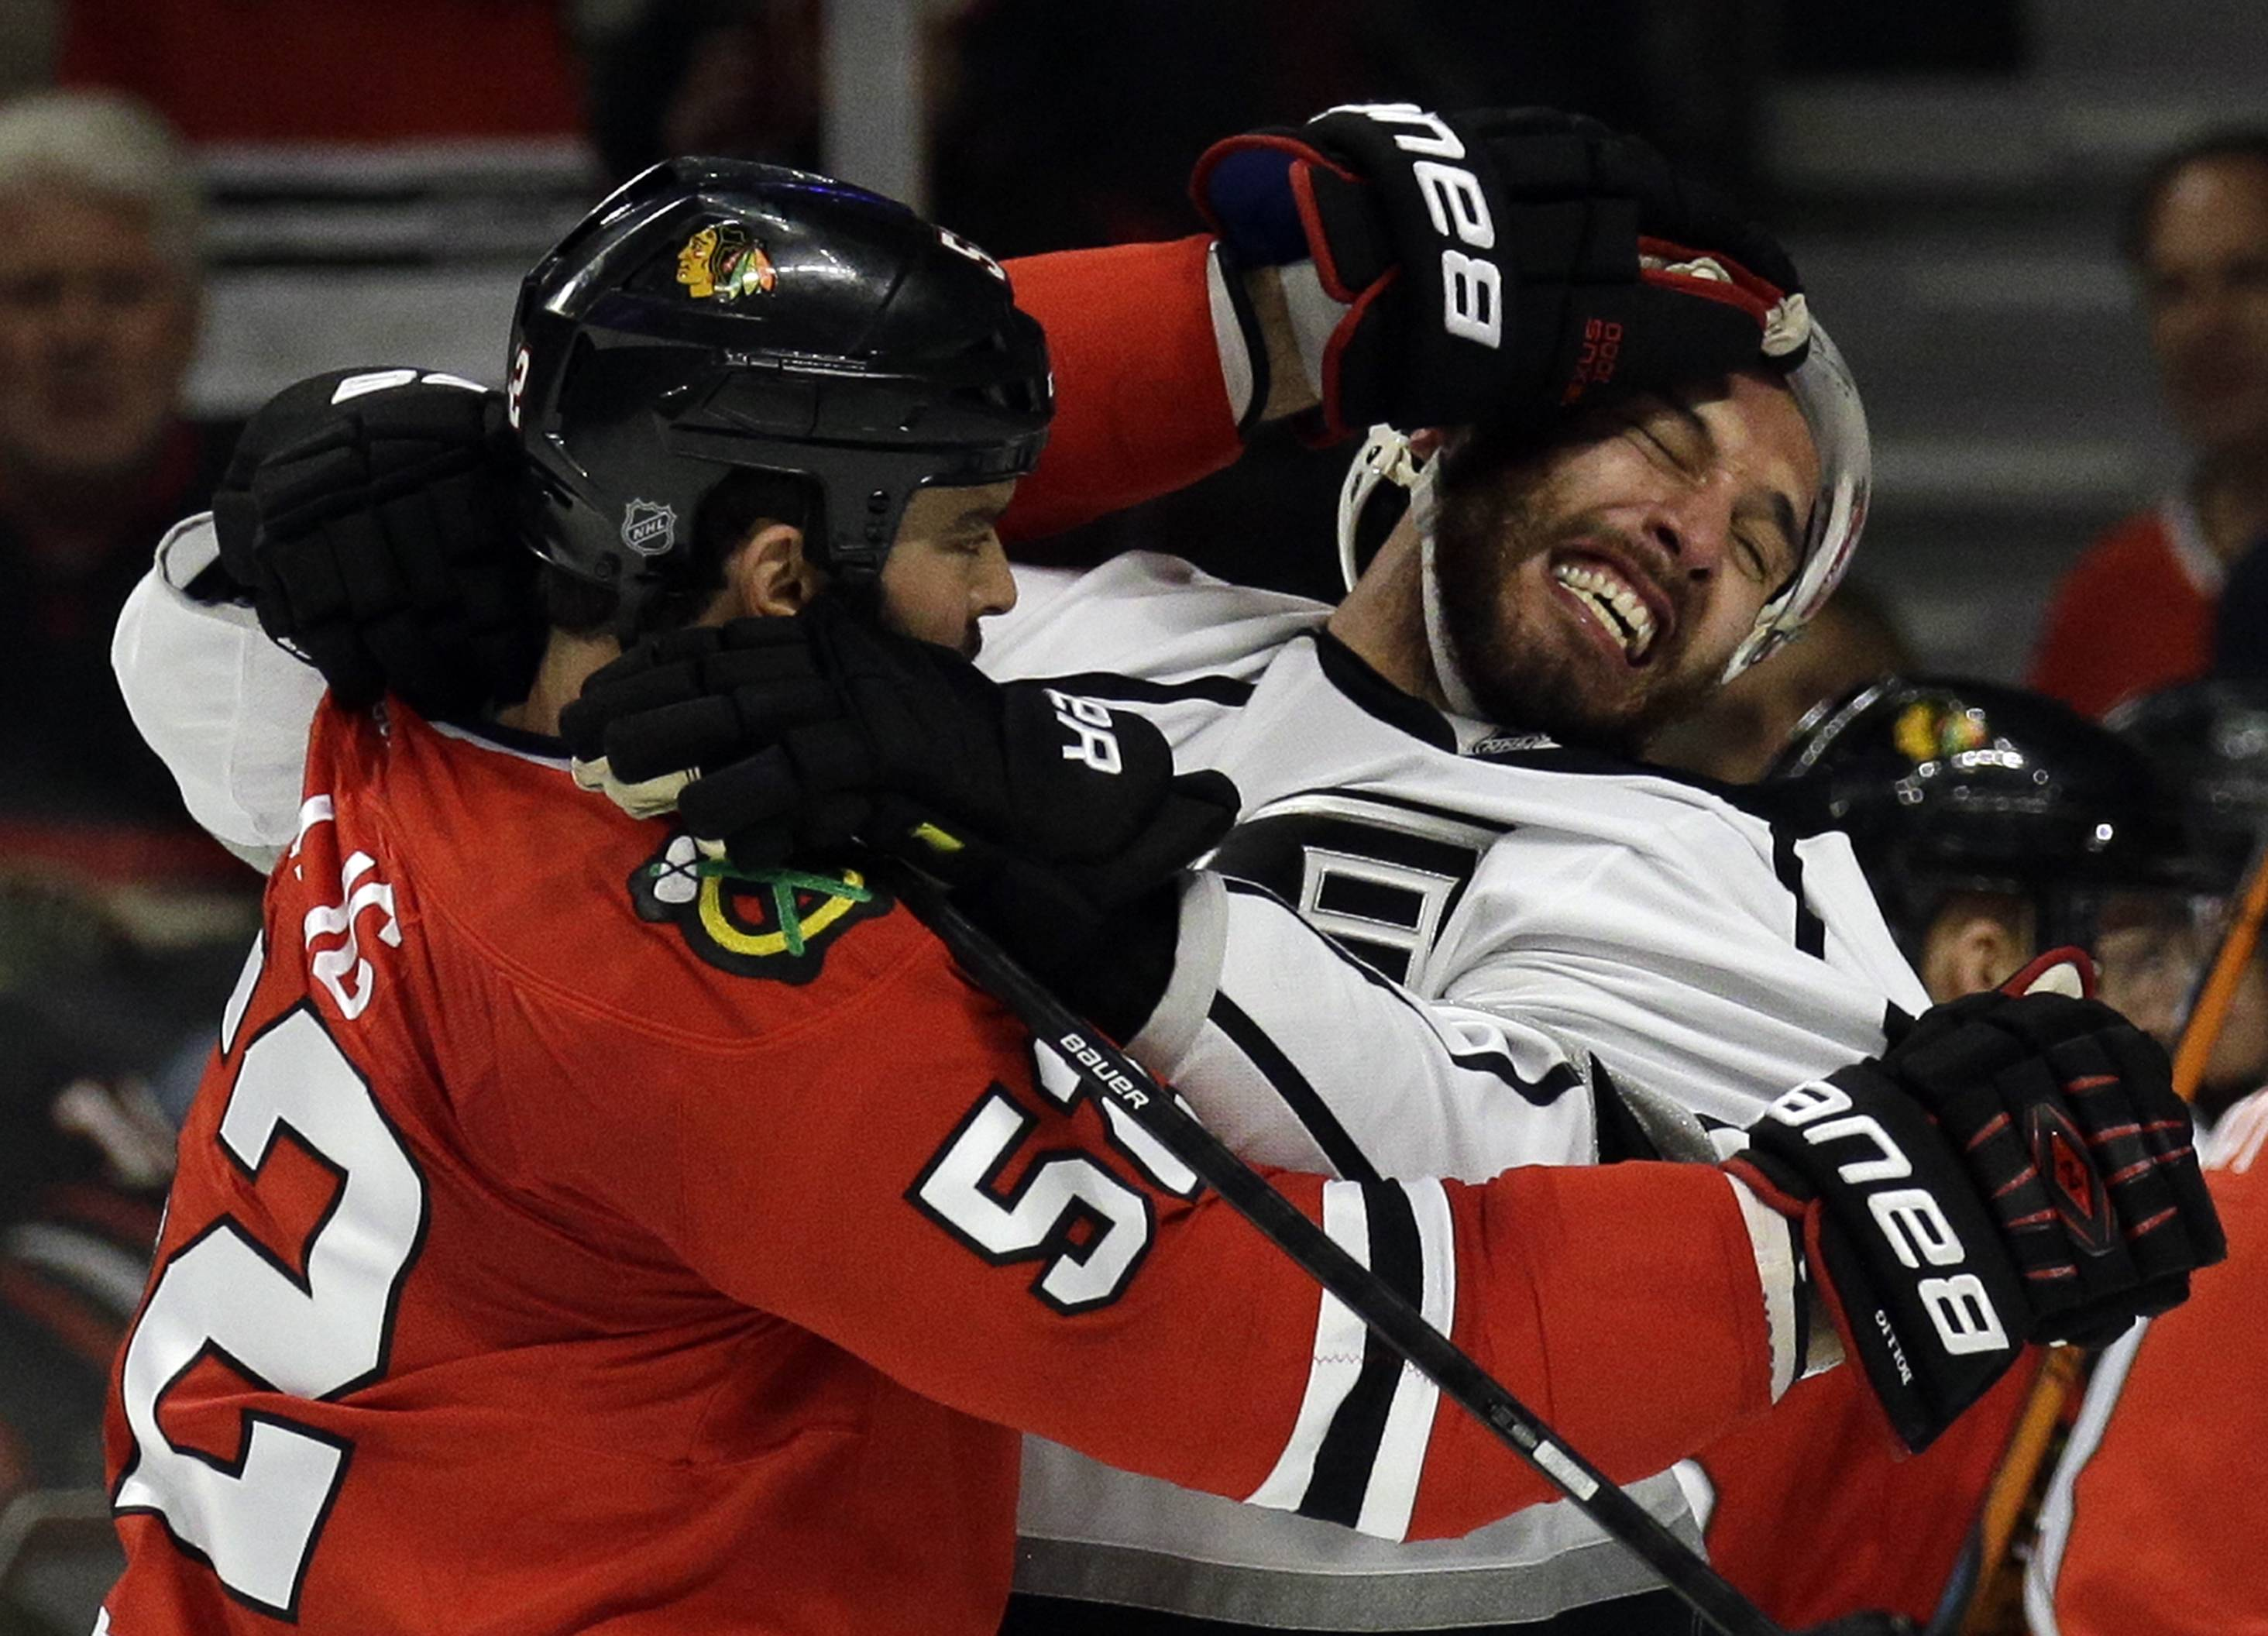 Chicago Blackhawks left wing Brandon Bollig (52) and Los Angeles Kings left wing Dwight King (74) fight during the first period.